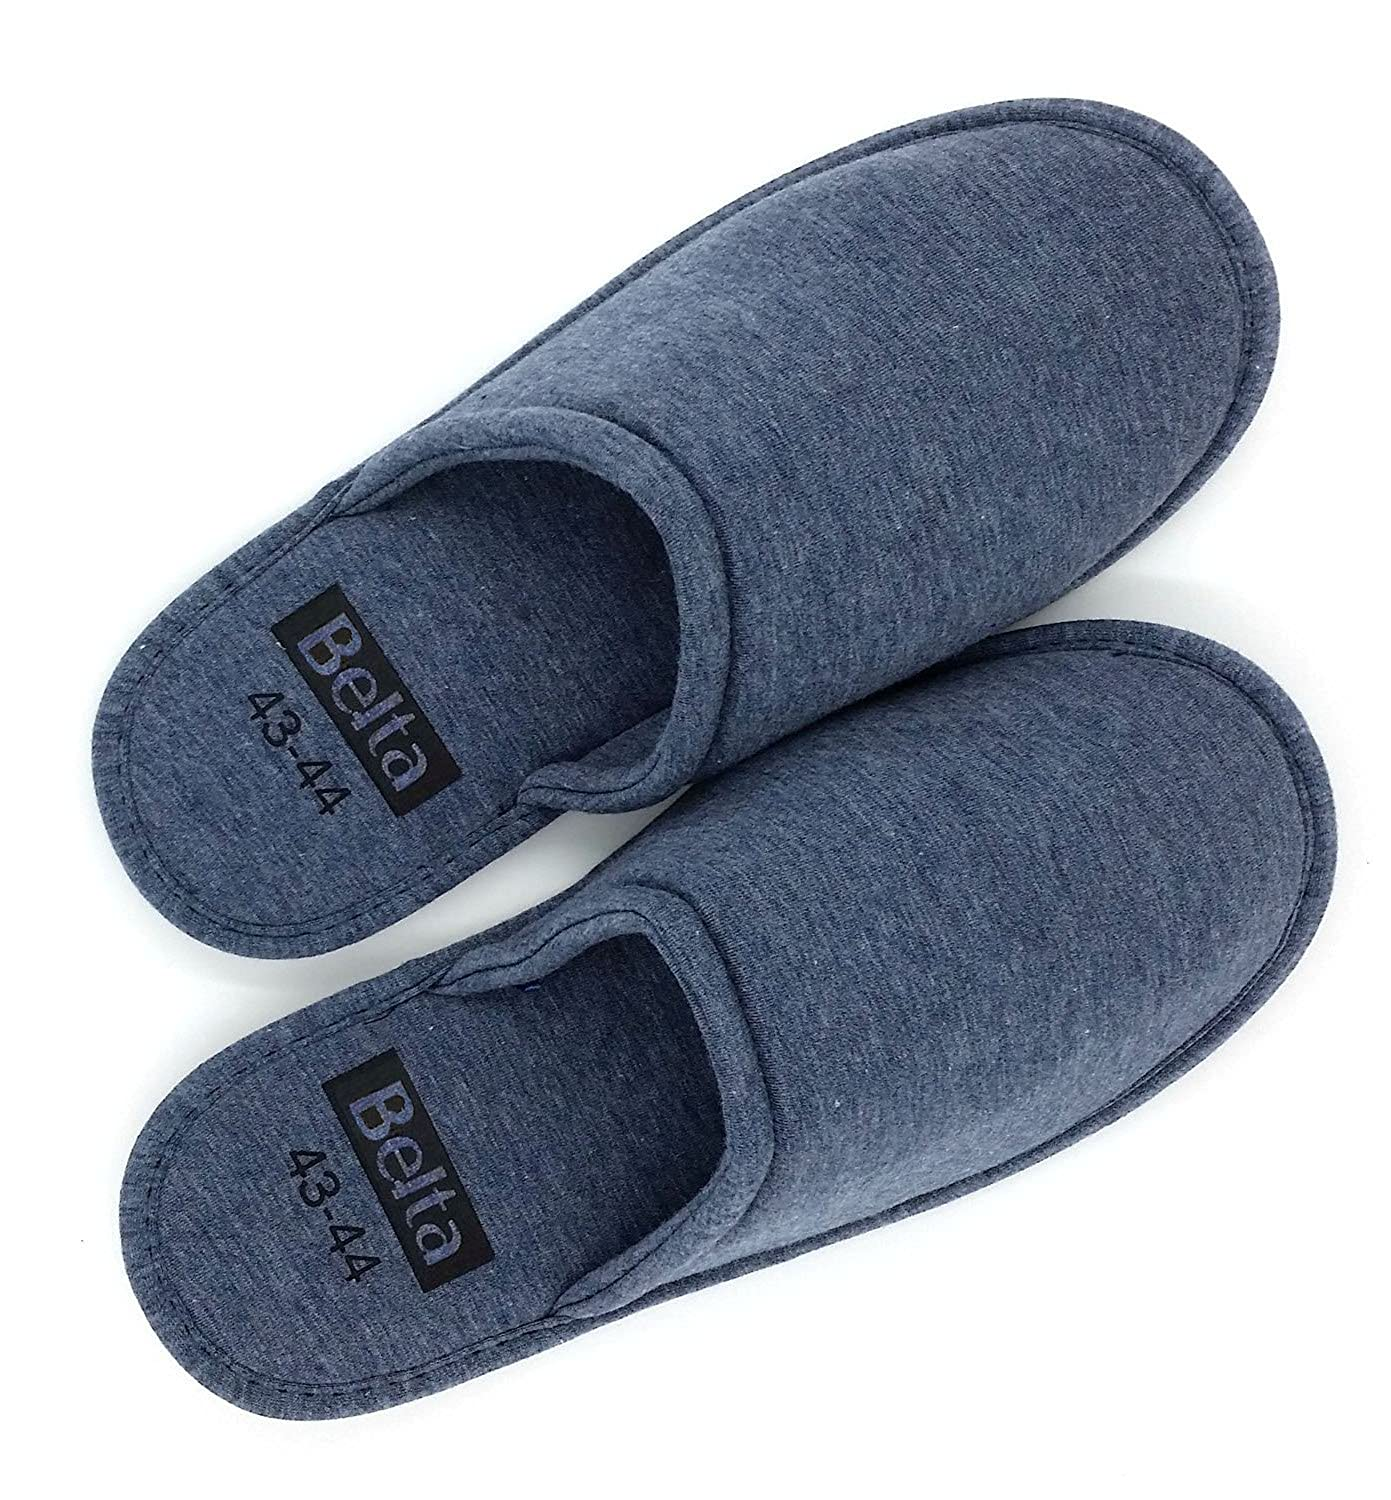 Sunshine Code Men's Cotton Indoor Slippers Spa House Slippers куртка house design code